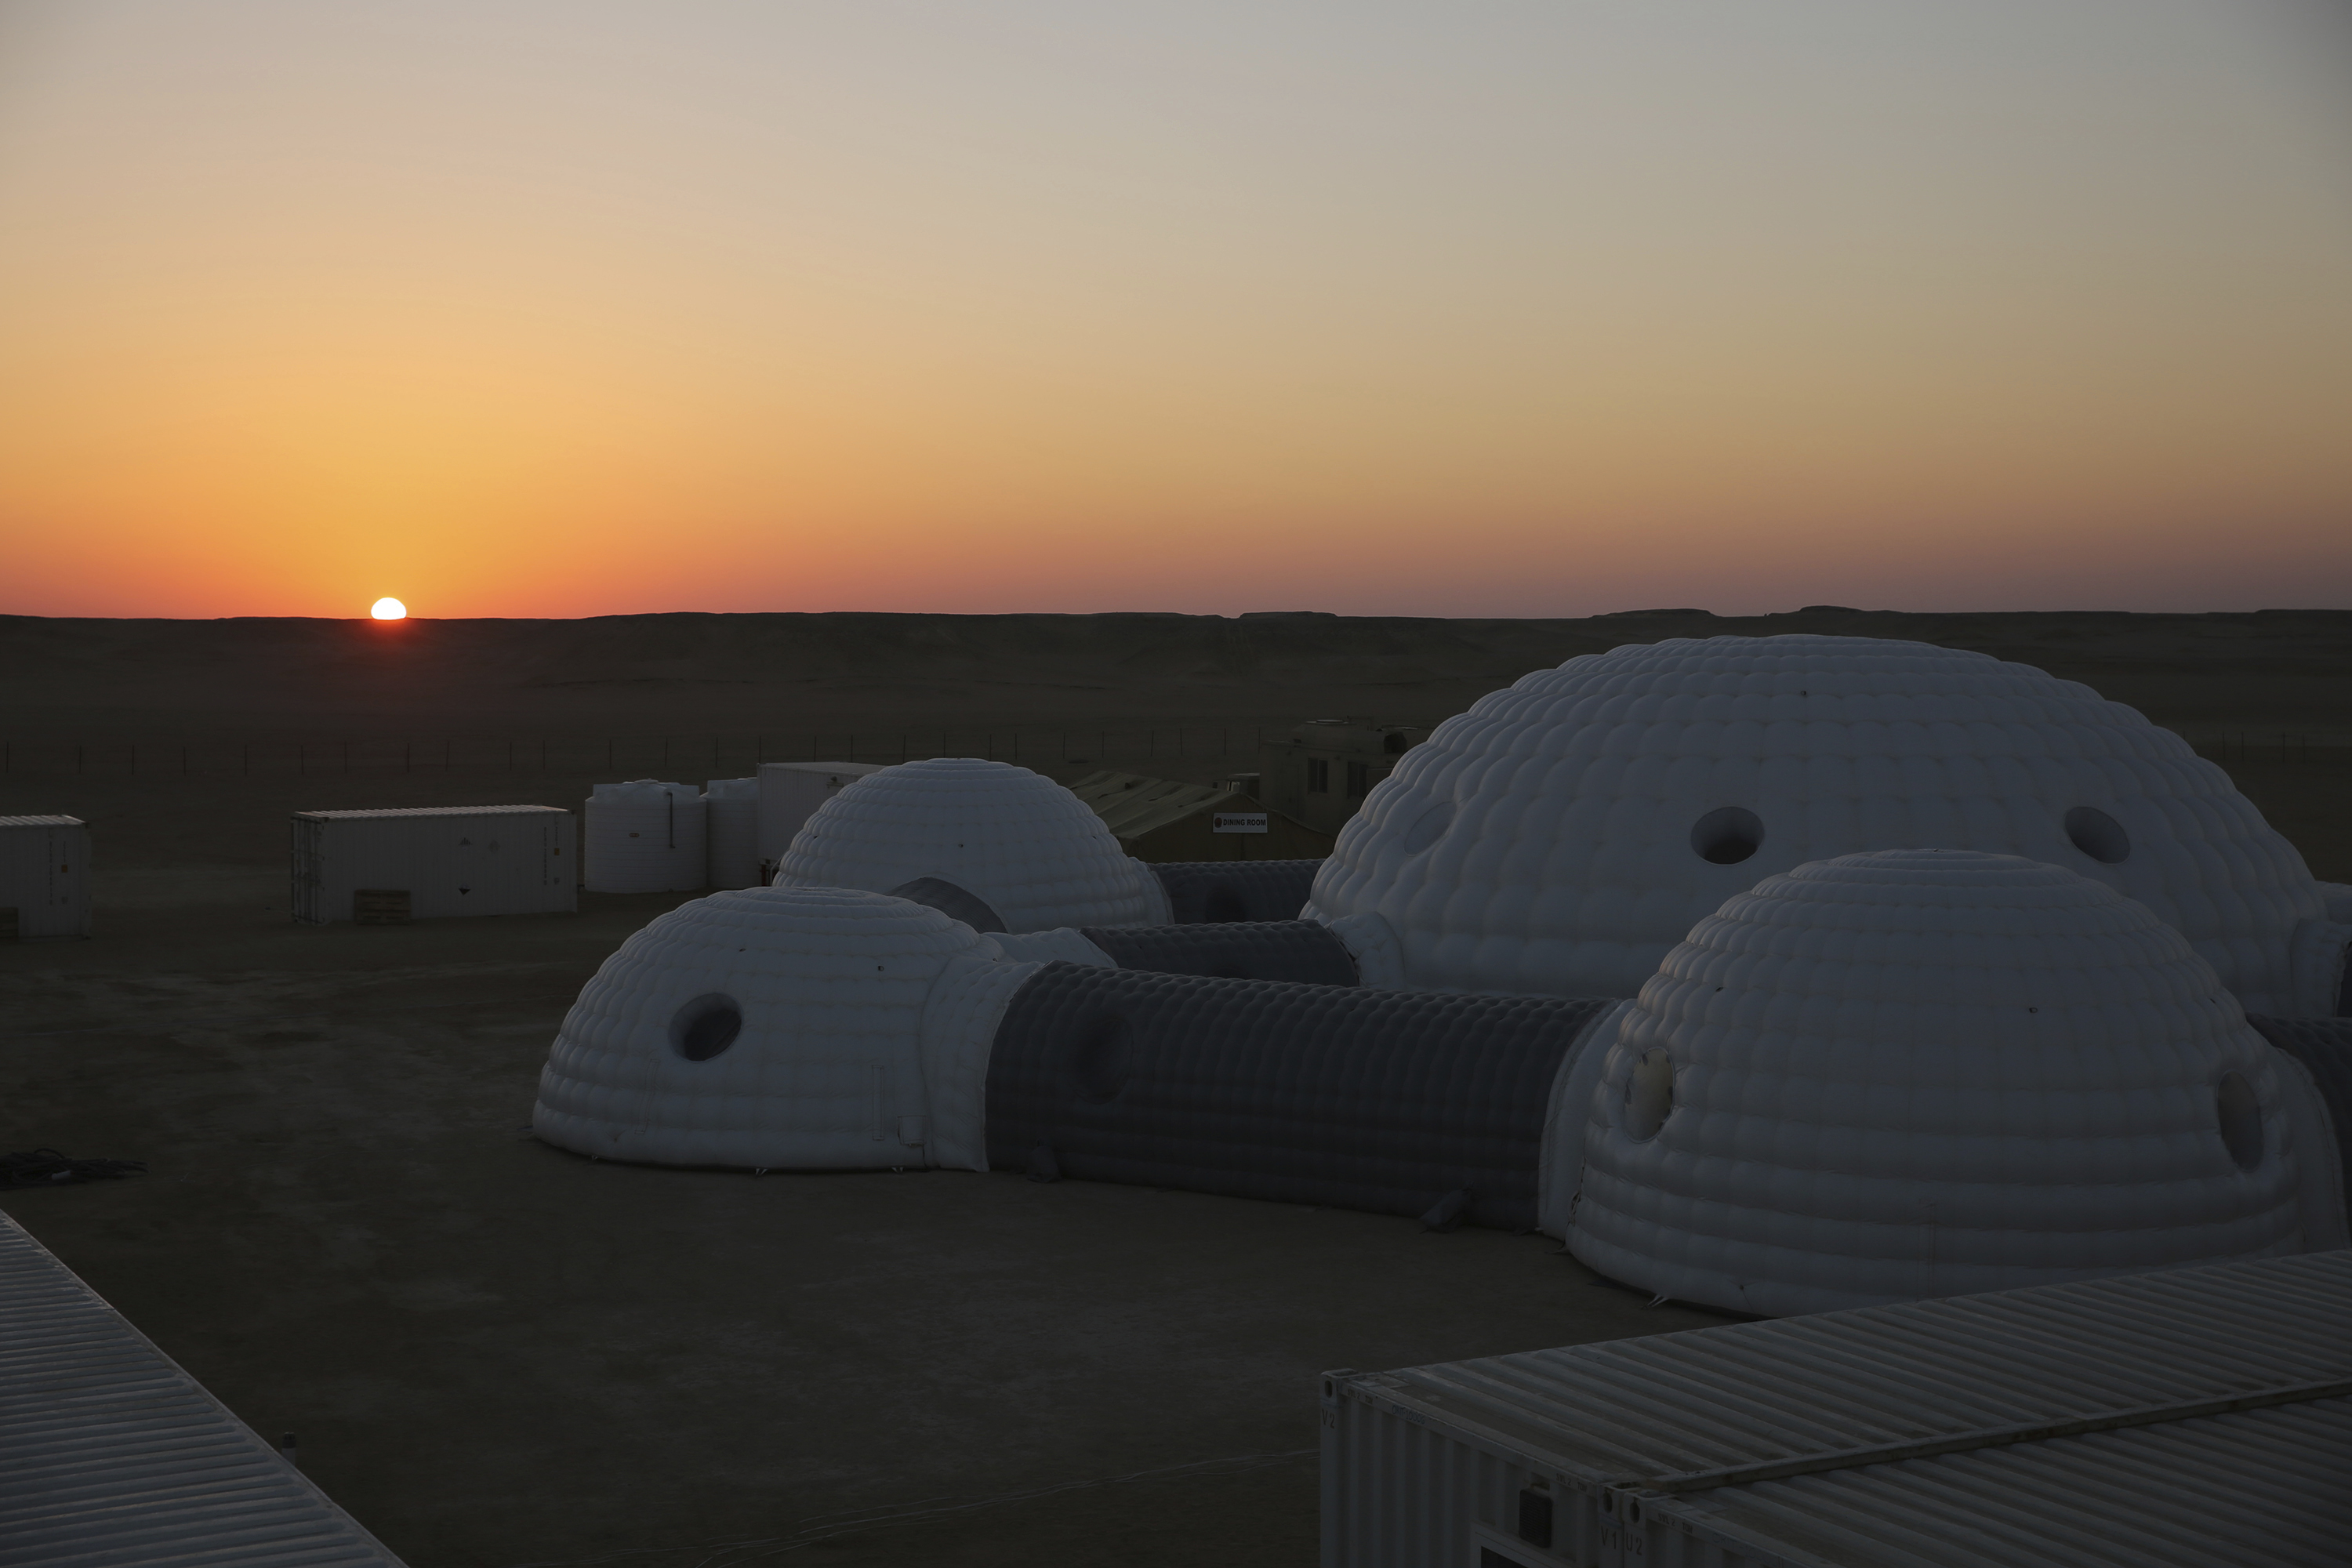 The sun rises over a 2.4-ton inflated habitat used by the AMADEE-18 Mars simulation in the Dhofar desert of southern Oman (Sam McNeil/AP)